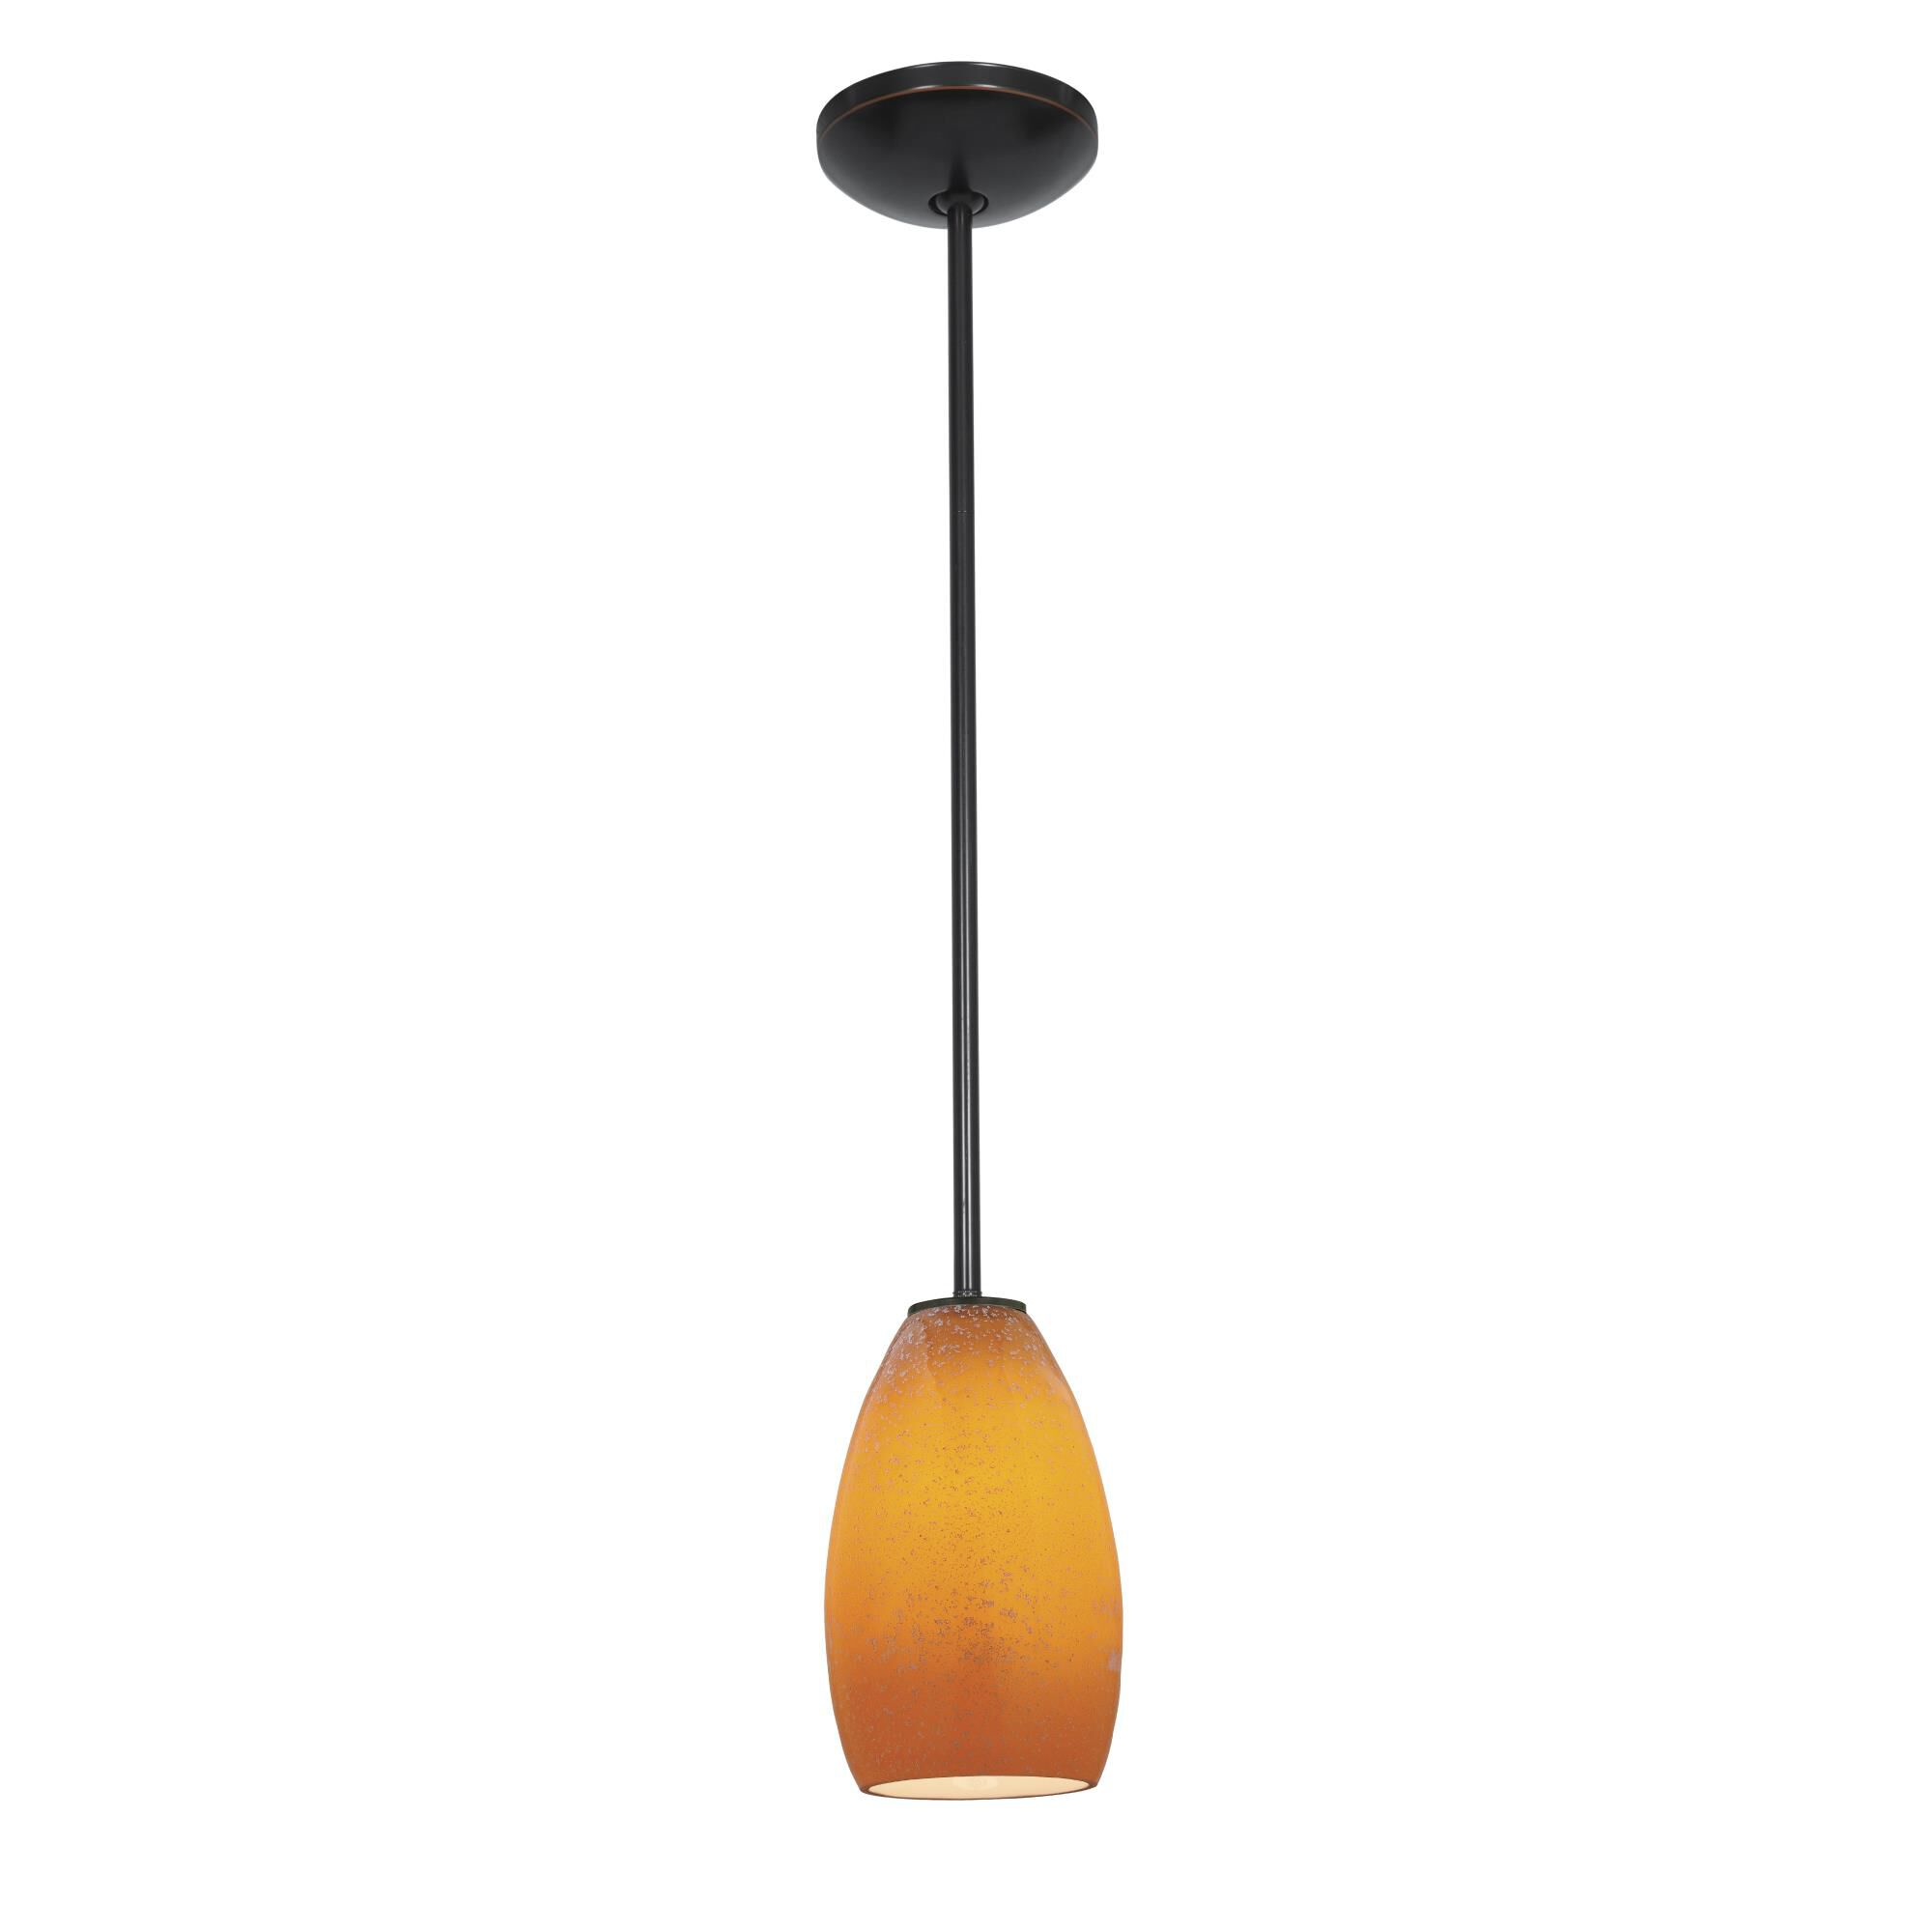 Access Lighting Champagne LED Mini Pendant Champagne 28012 4R ORBMYA Modern Contemporary